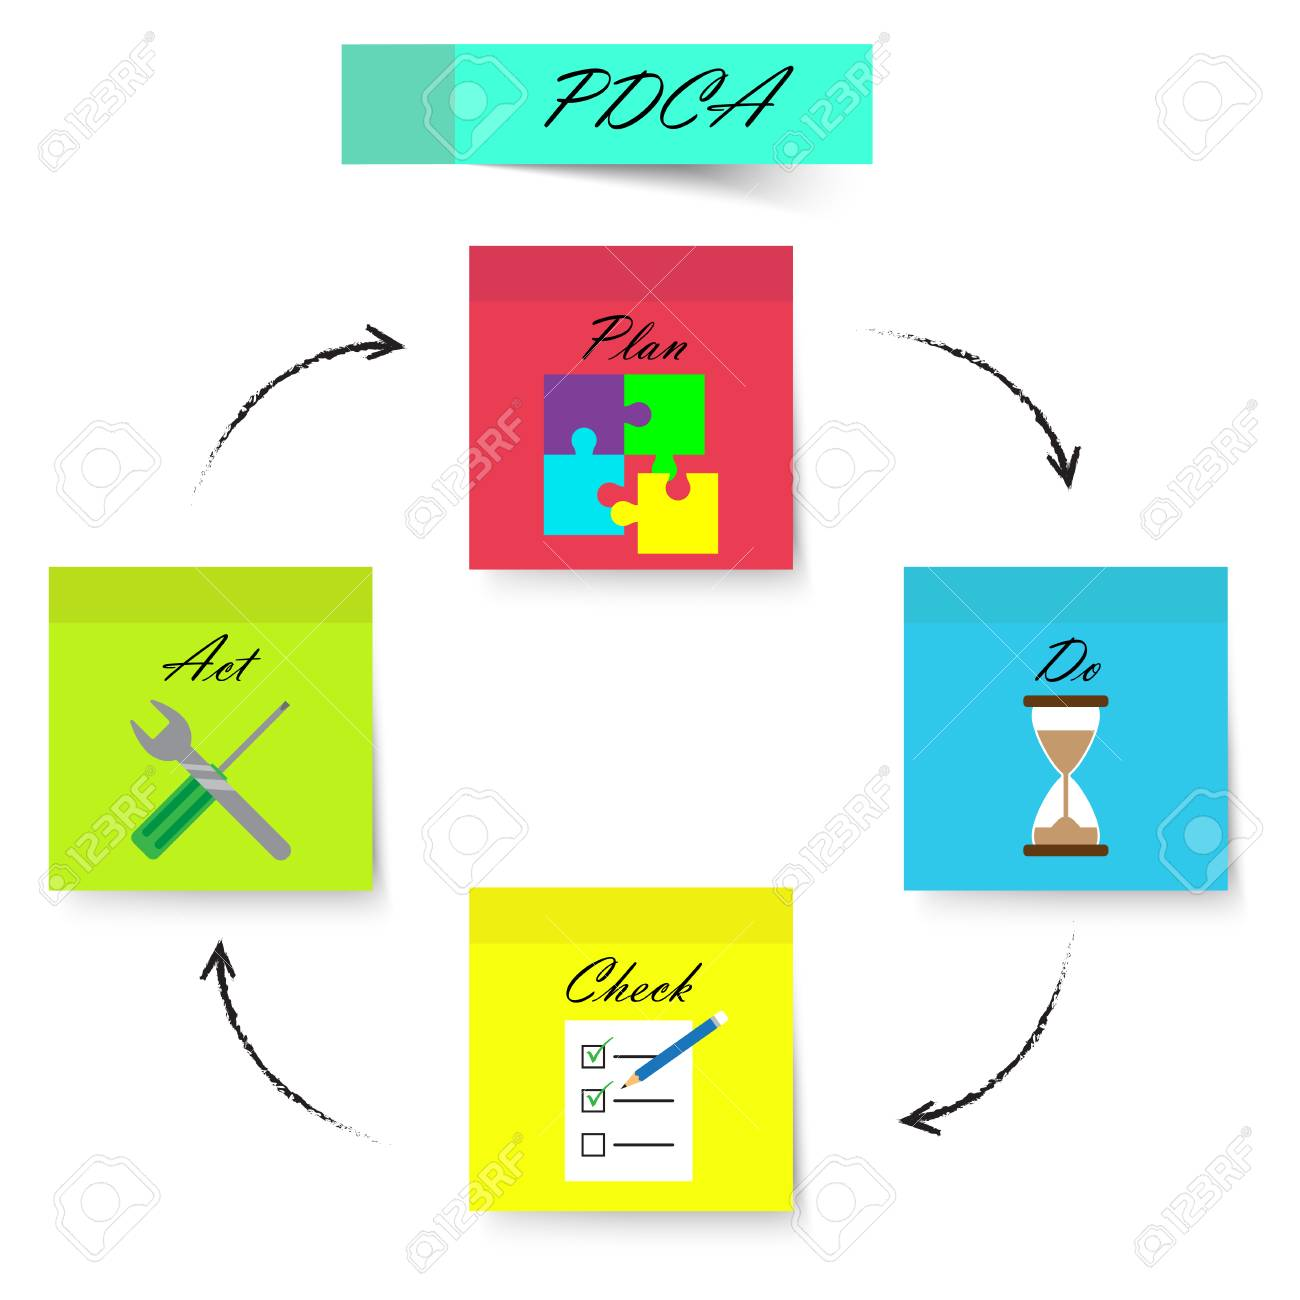 Pdca Diagram Plan Do Check Act Colorful Sticky Notes Including Icons Inside